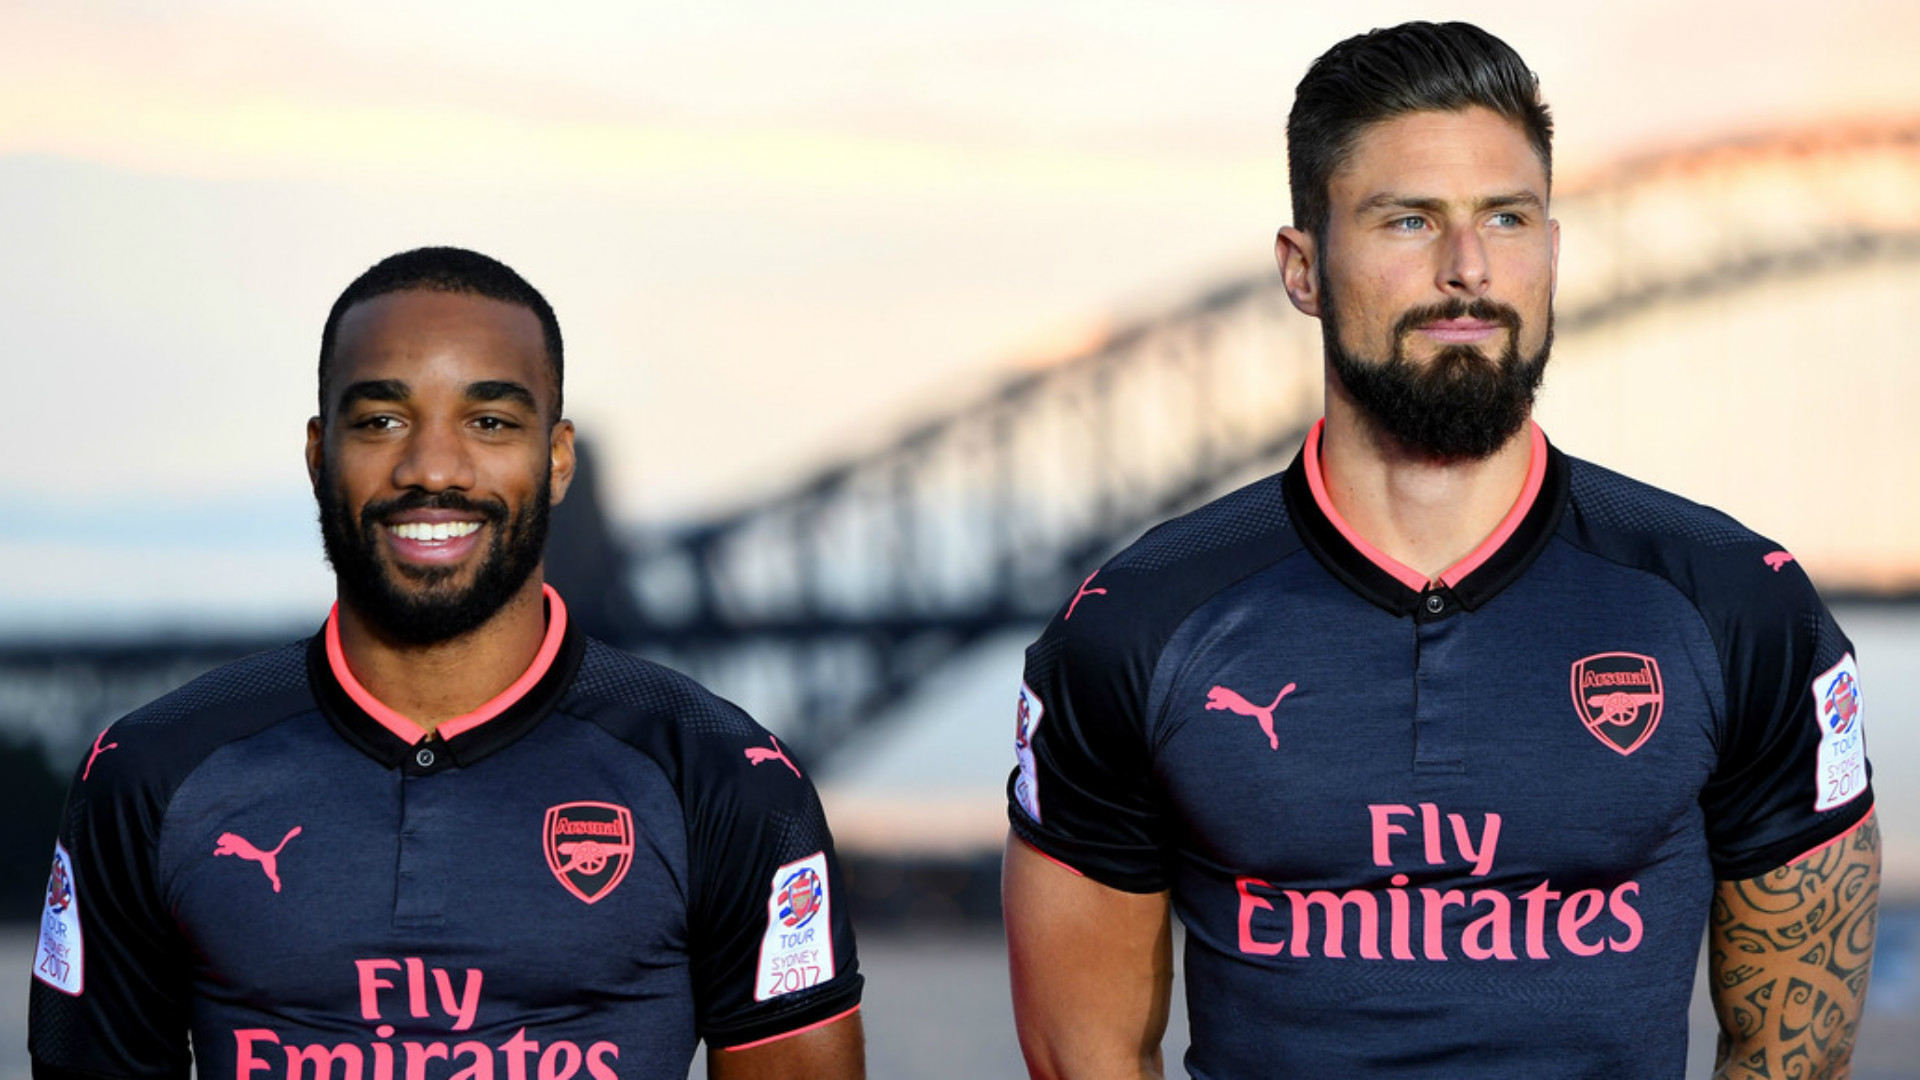 Arsenal News  Gunners unveil new black and pink third kit  66e7a9304